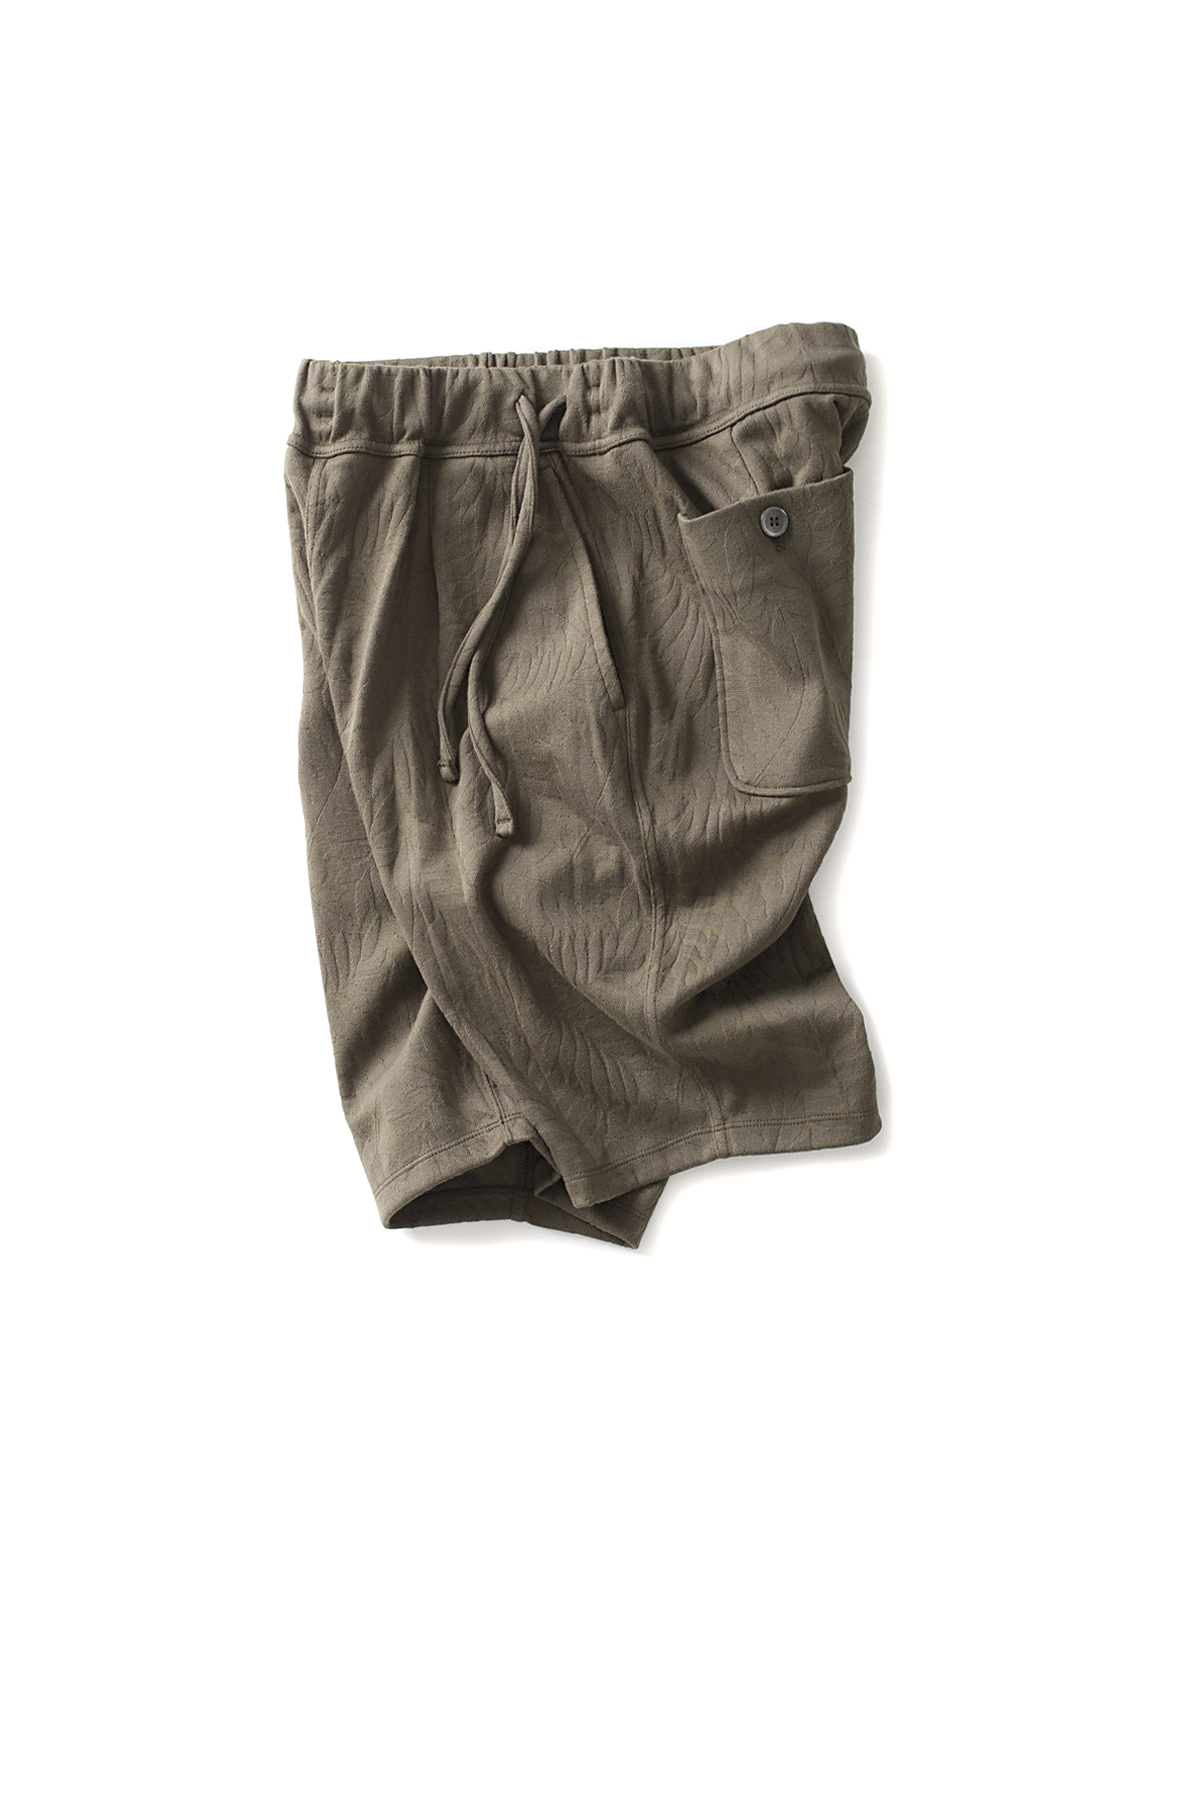 Curly : Palm Shorts (Olive JAQ)